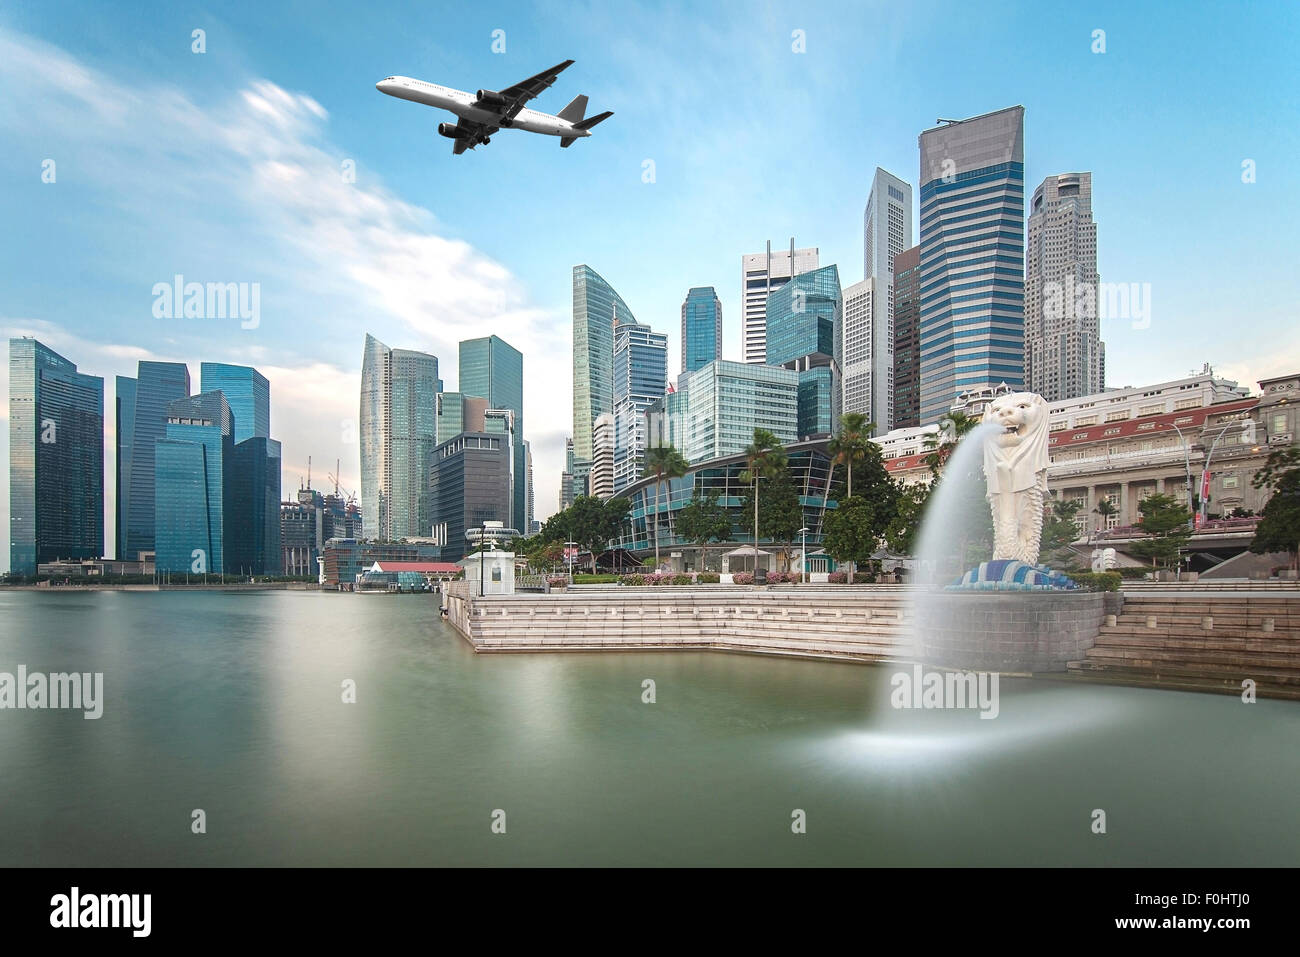 Concept de voyage, de Transport - Avion survolant la ville de Singapour en temps matin Photo Stock